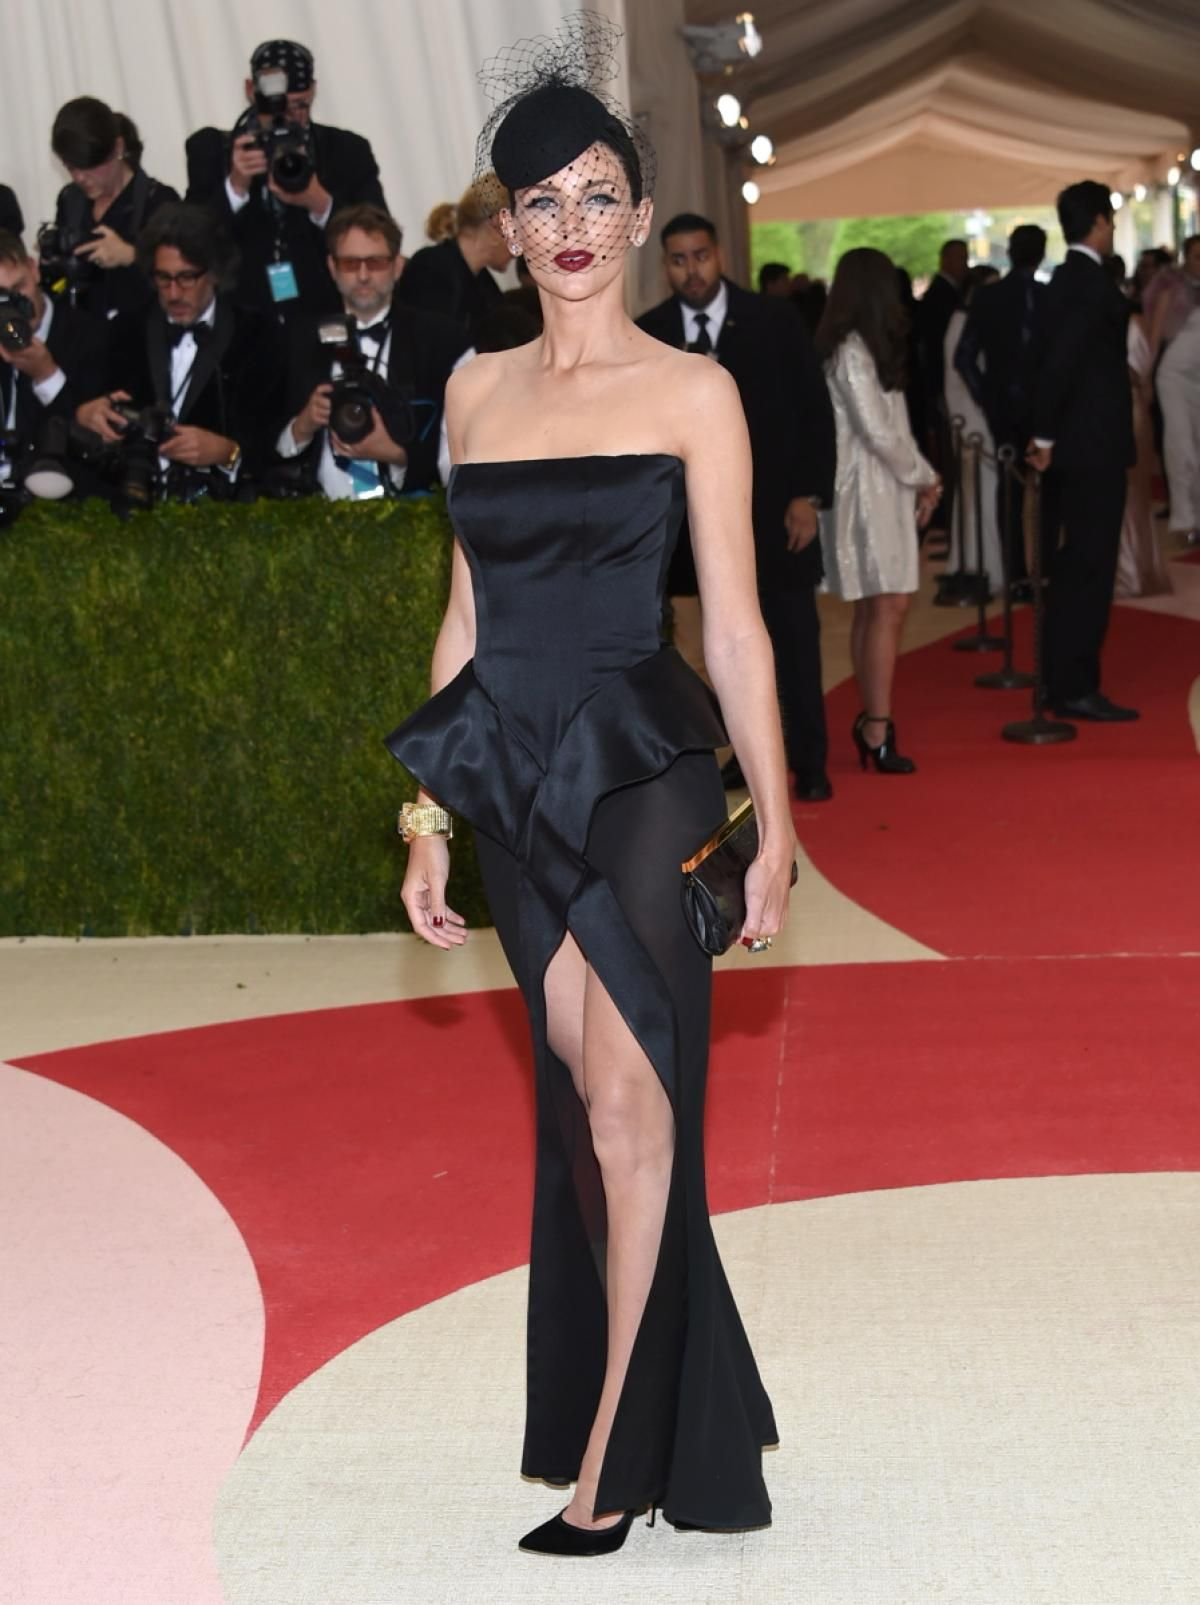 """Liberty Ross arrives at The Metropolitan Museum of Art Costume Institute Benefit Gala, celebrating the opening of """"Manus x Machina: Fashion in an Age of Technology"""" on Monday, May 2, 2016, in New York."""